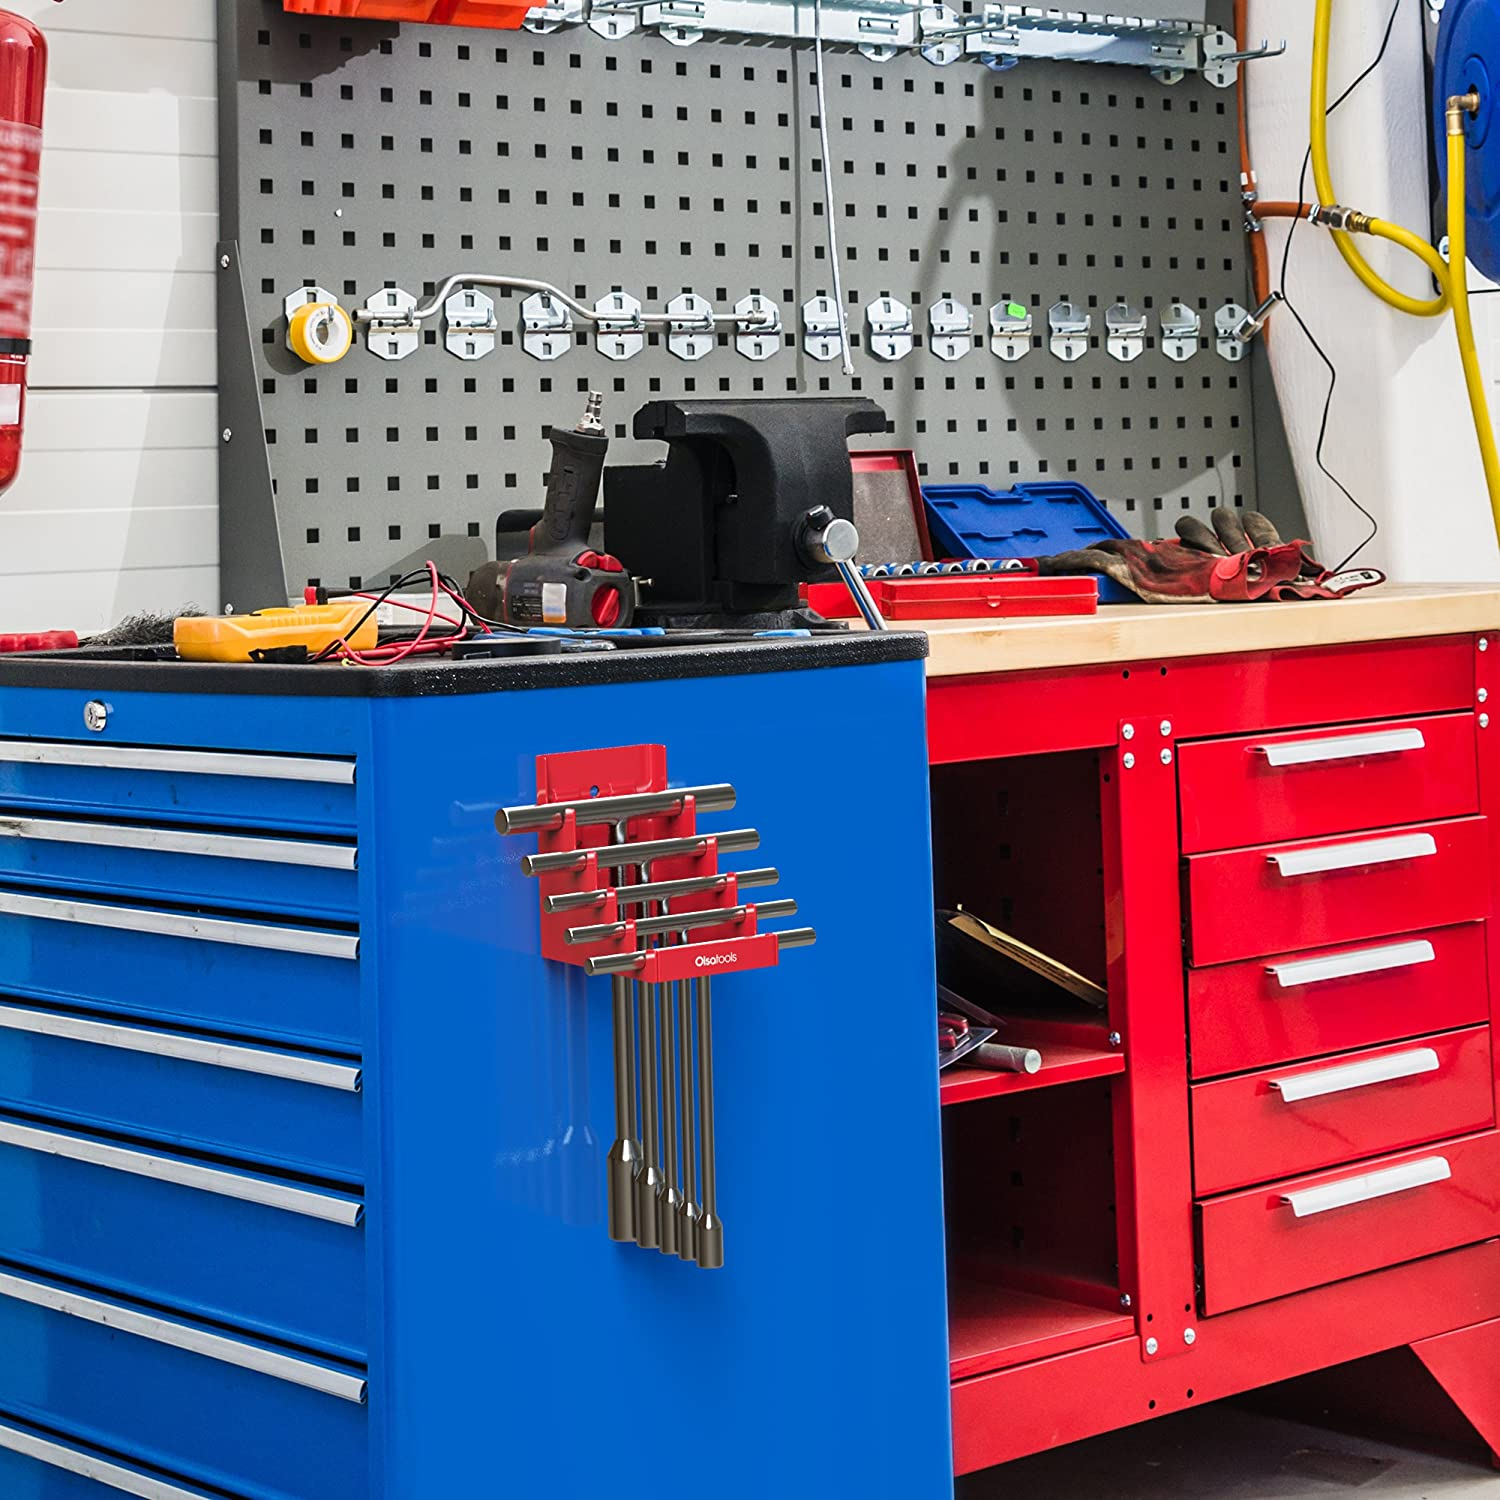 Holds 5 T-Handles Heavy Duty and Improved T-Handle Rack Red Olsa Tools Magnetic T-Handle Holder for Tool Storage